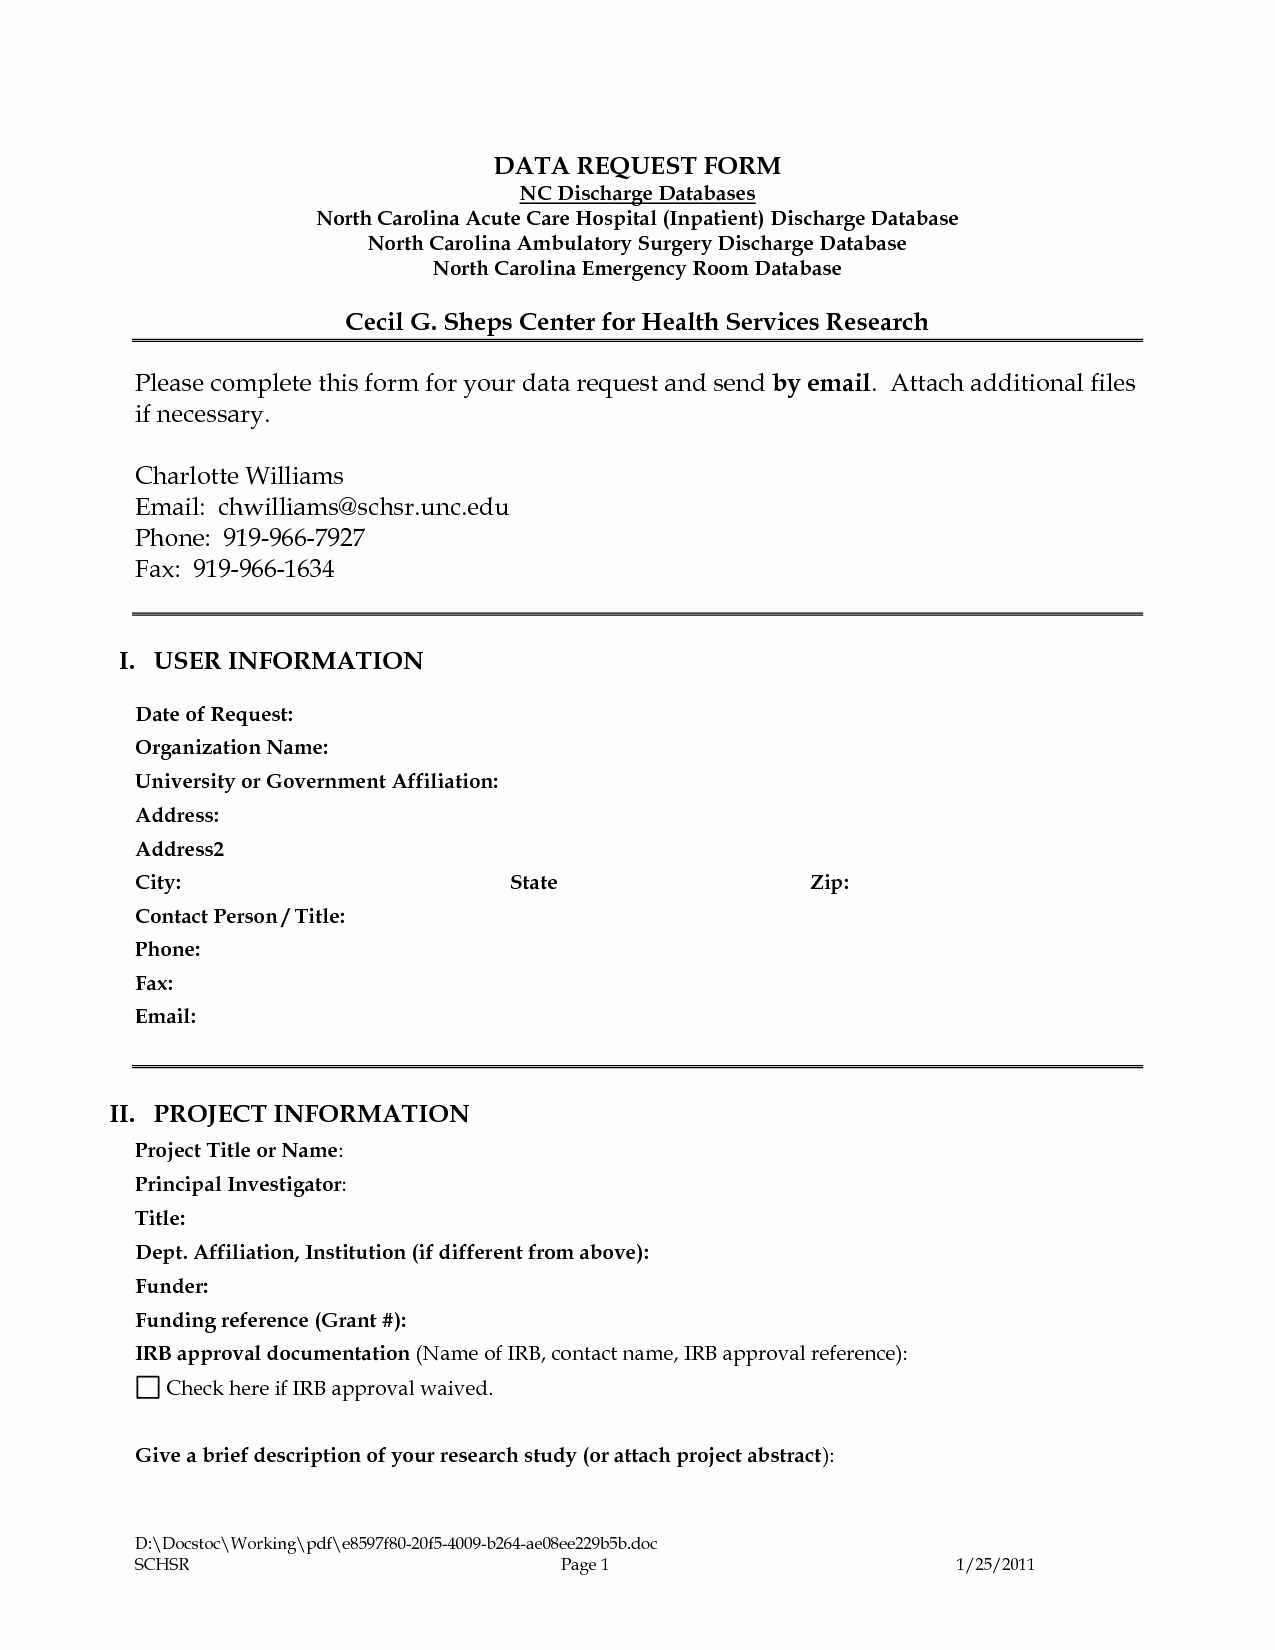 Emergency Room Release form Beautiful Index Of Cdn 29 2002 539